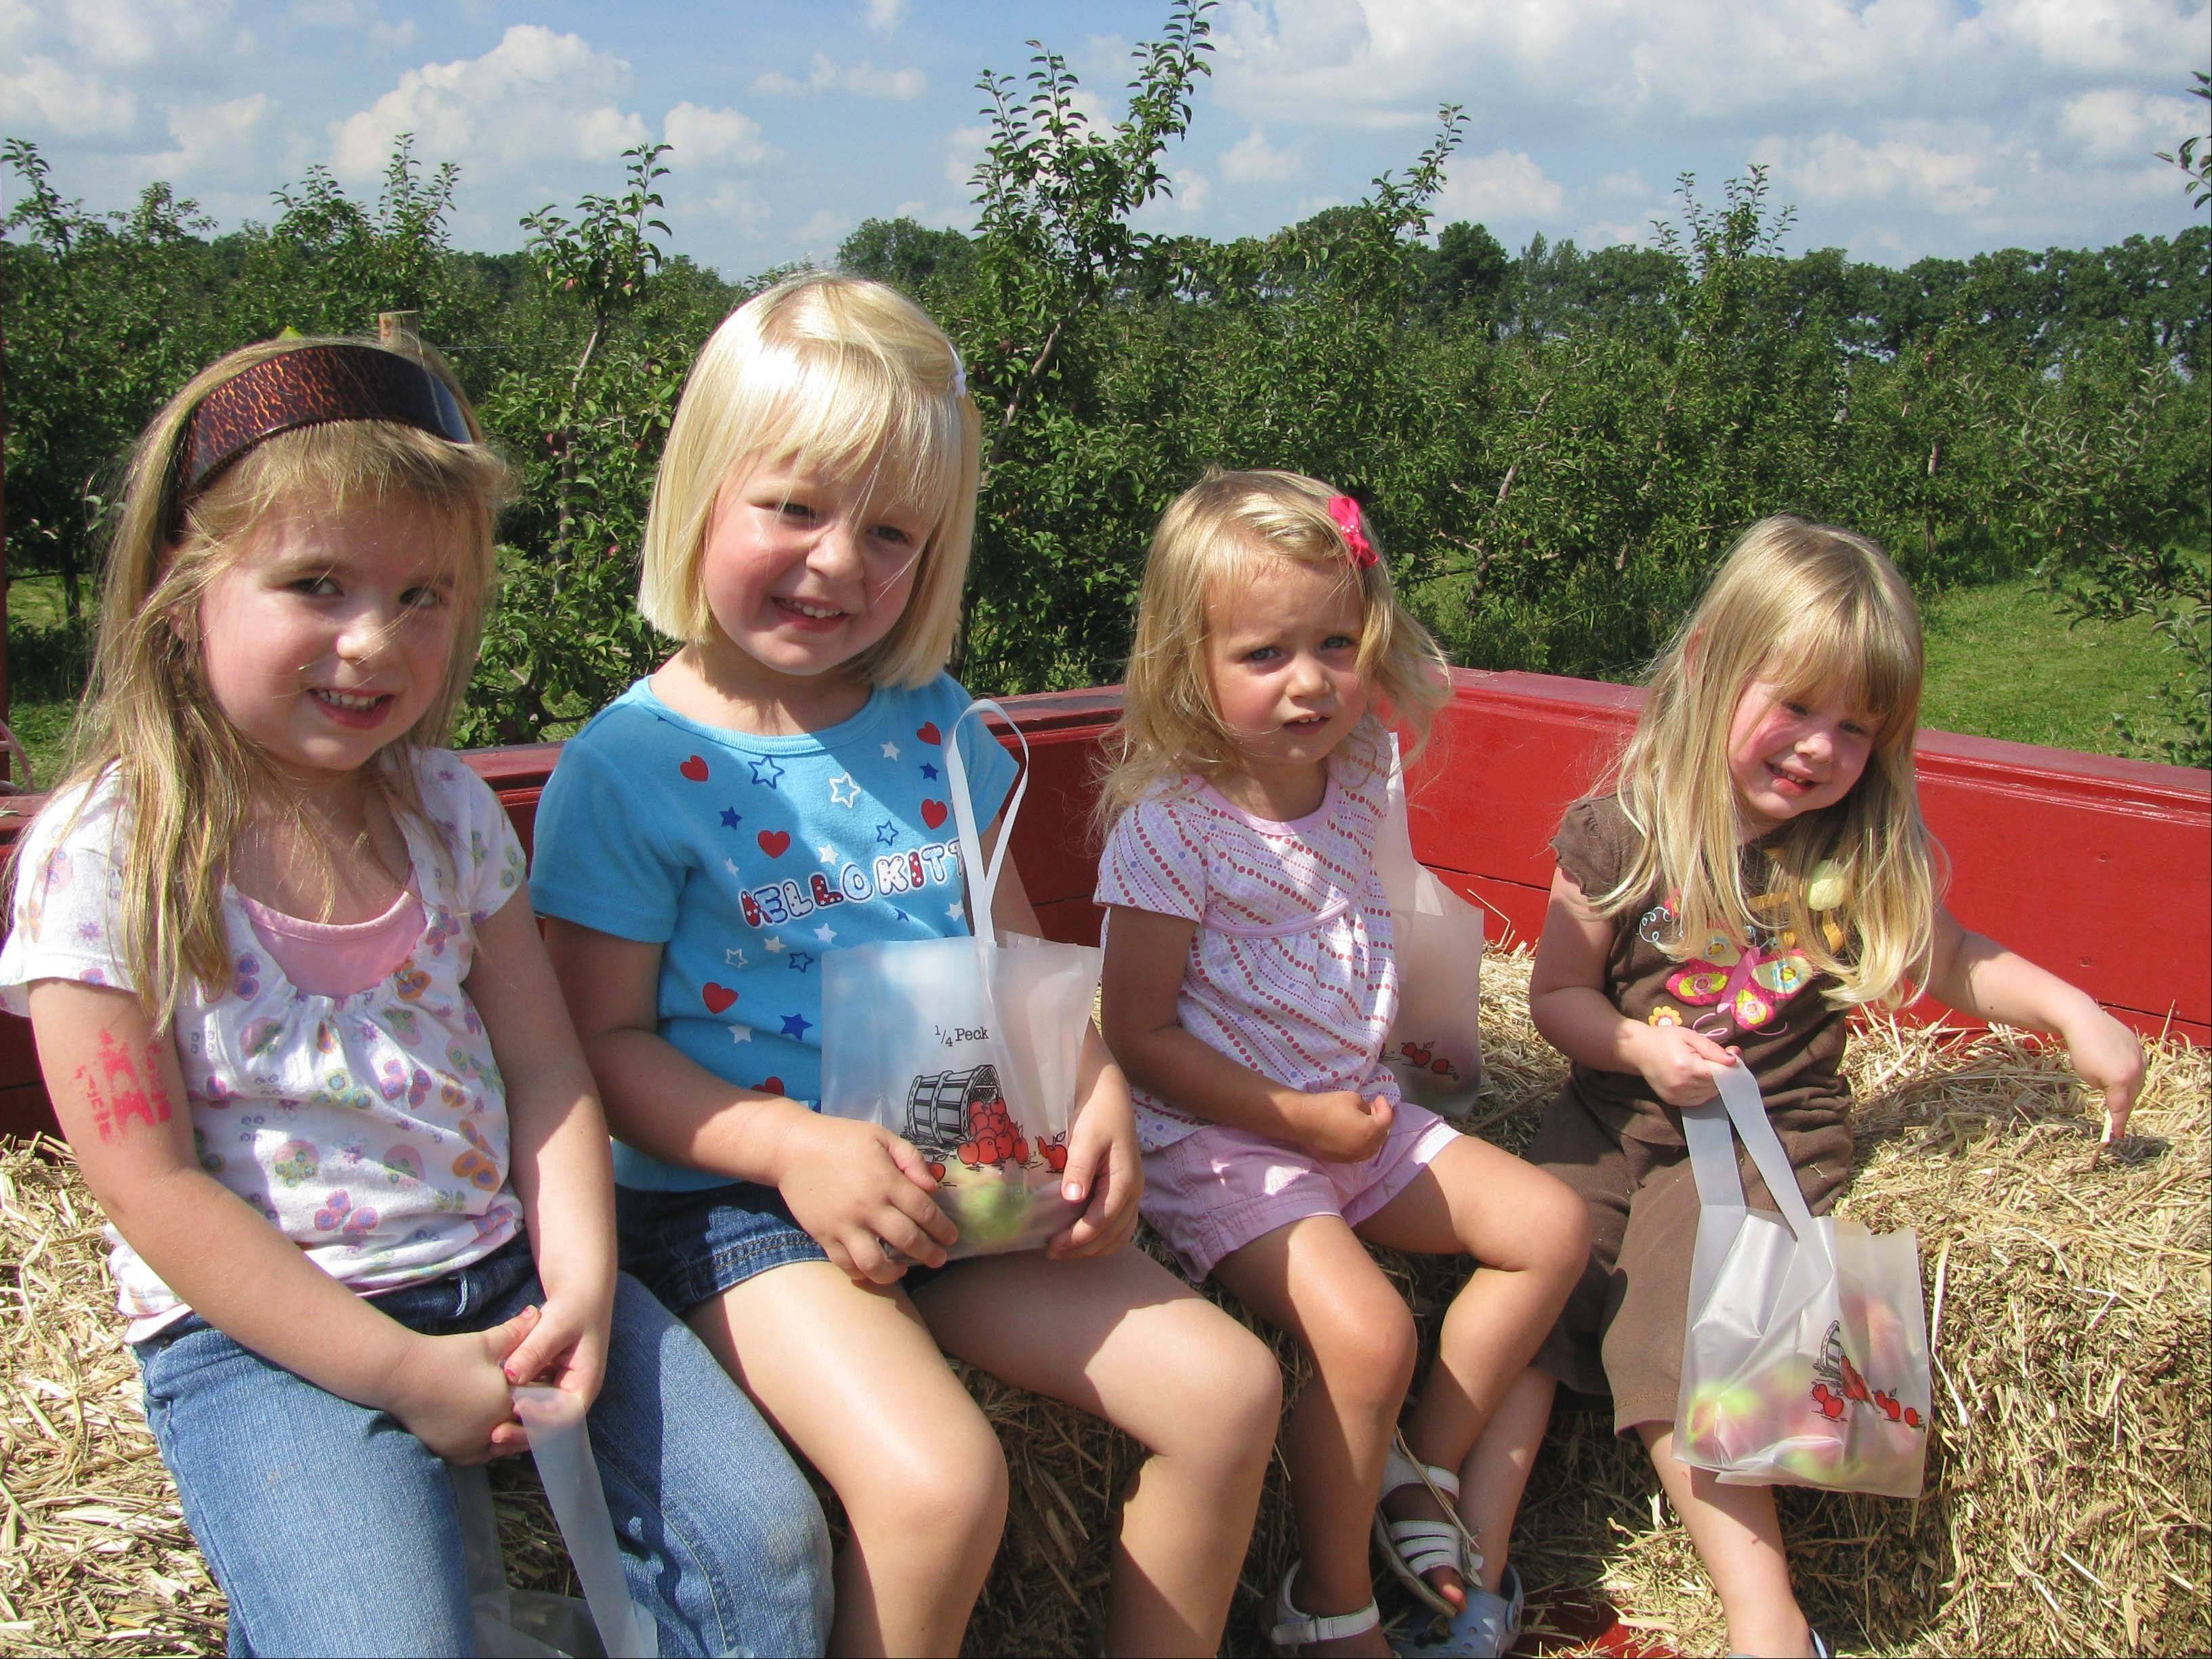 A wagon tour is part of the fun of apple picking at the Royal Oak Farm Orchard in Harvard.